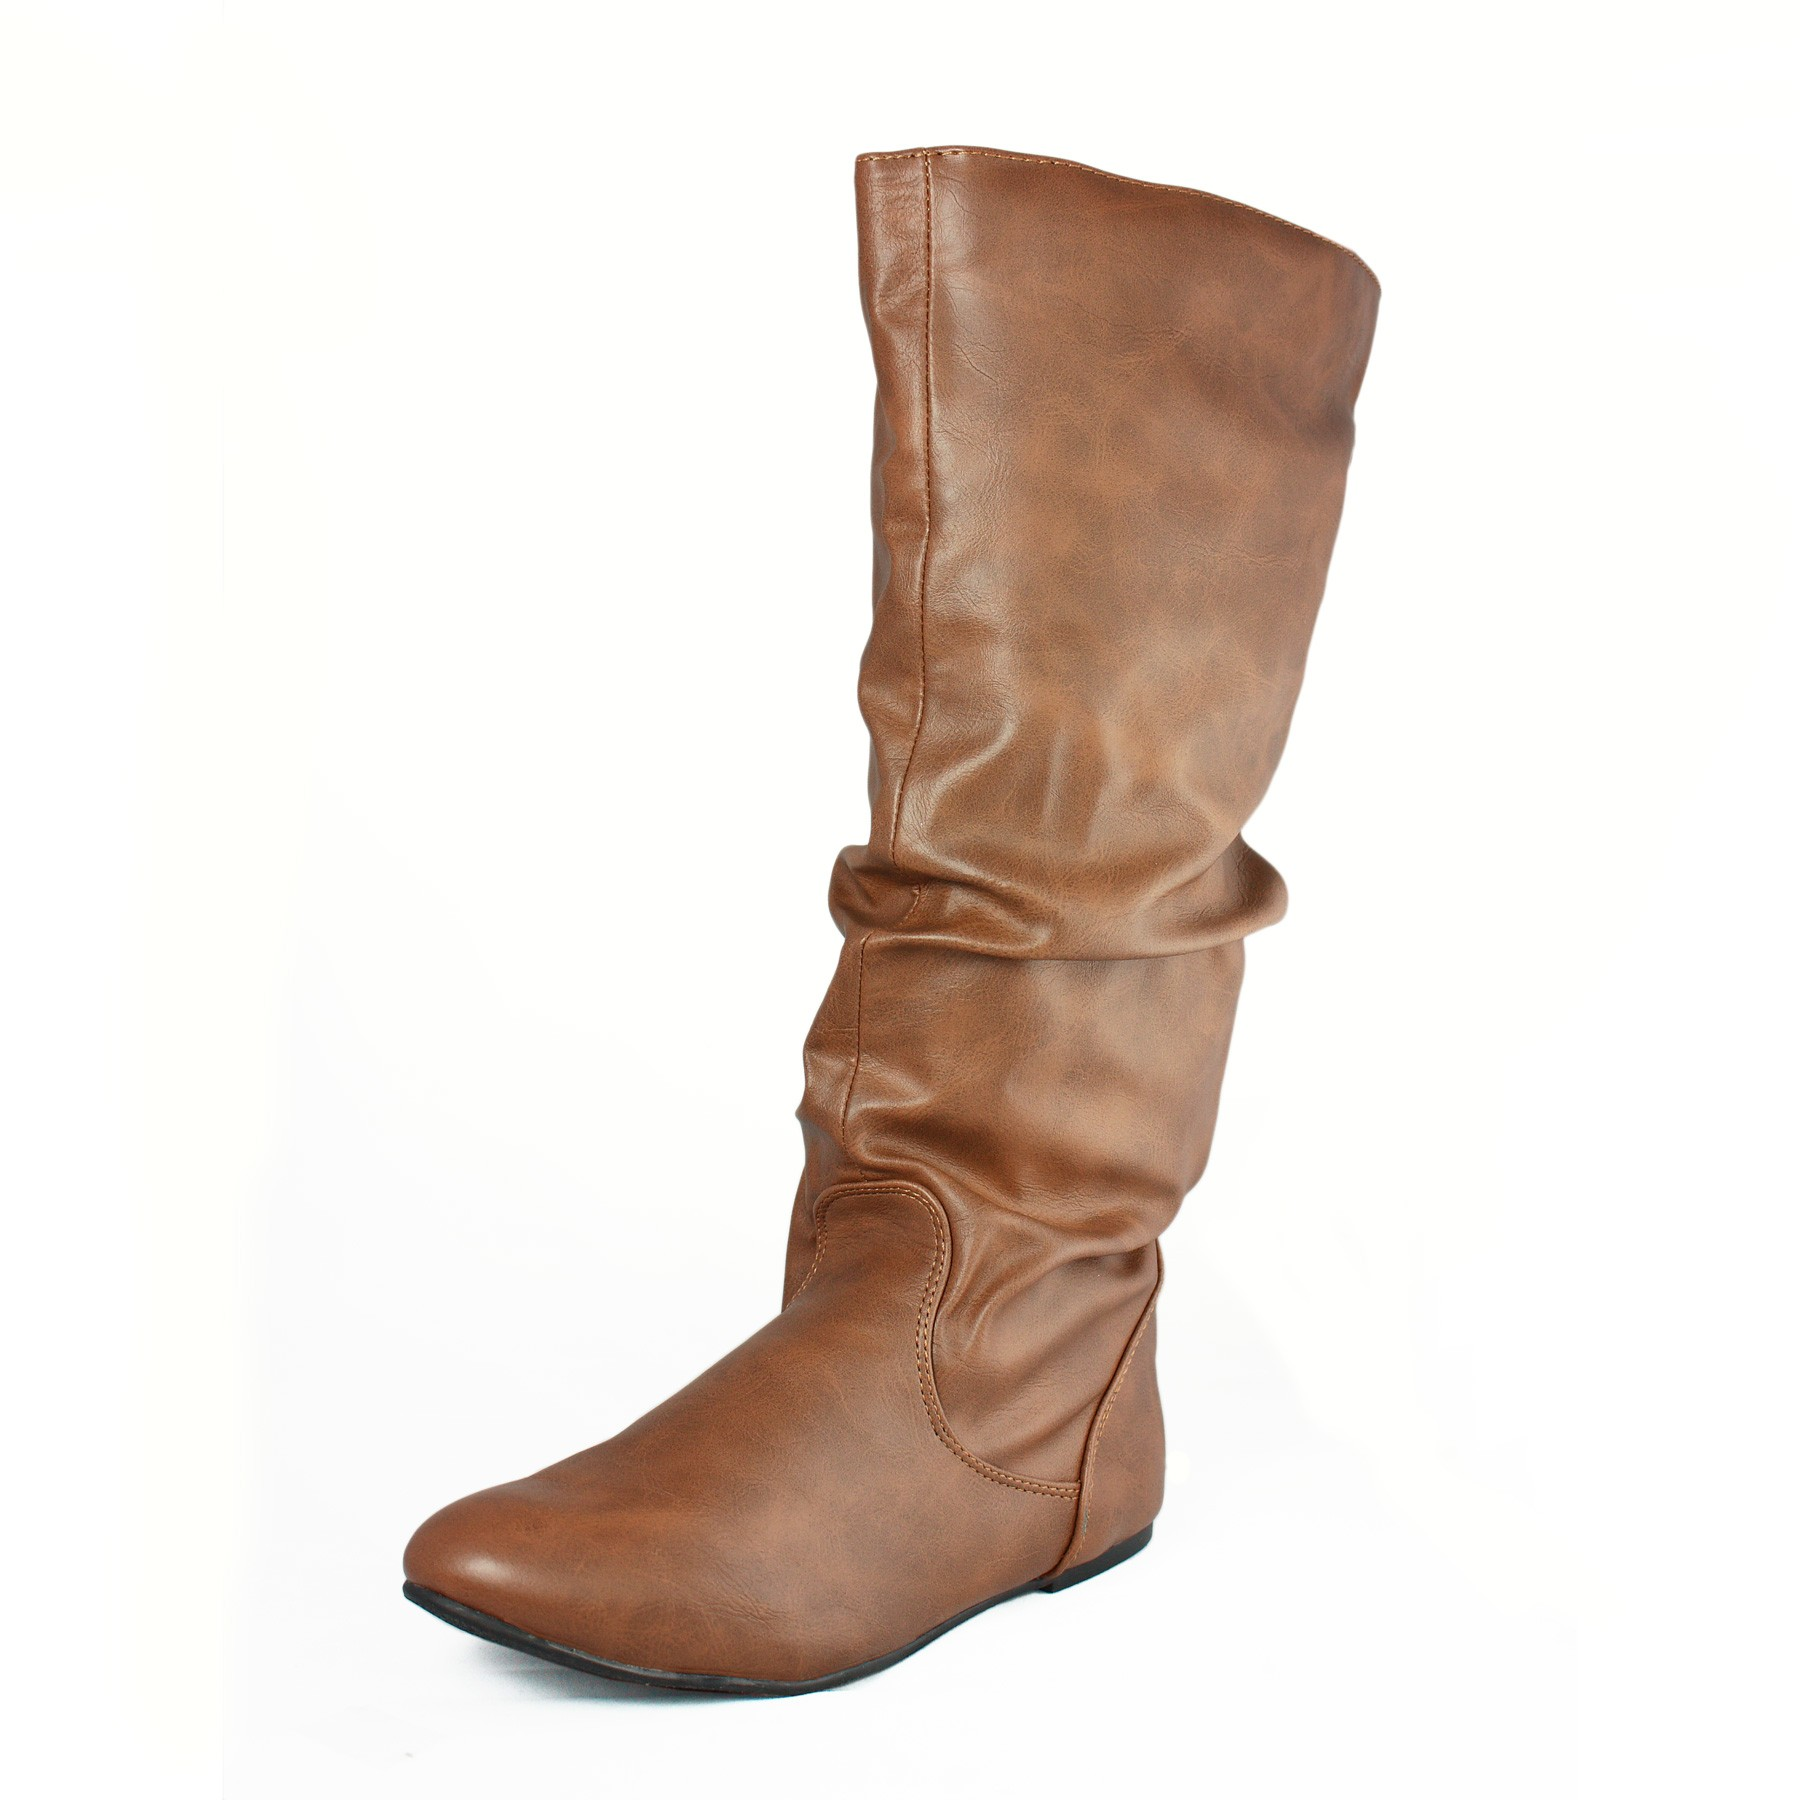 Ankle Booties -Women's Ankle Boots-Short Boots-Heeled ...